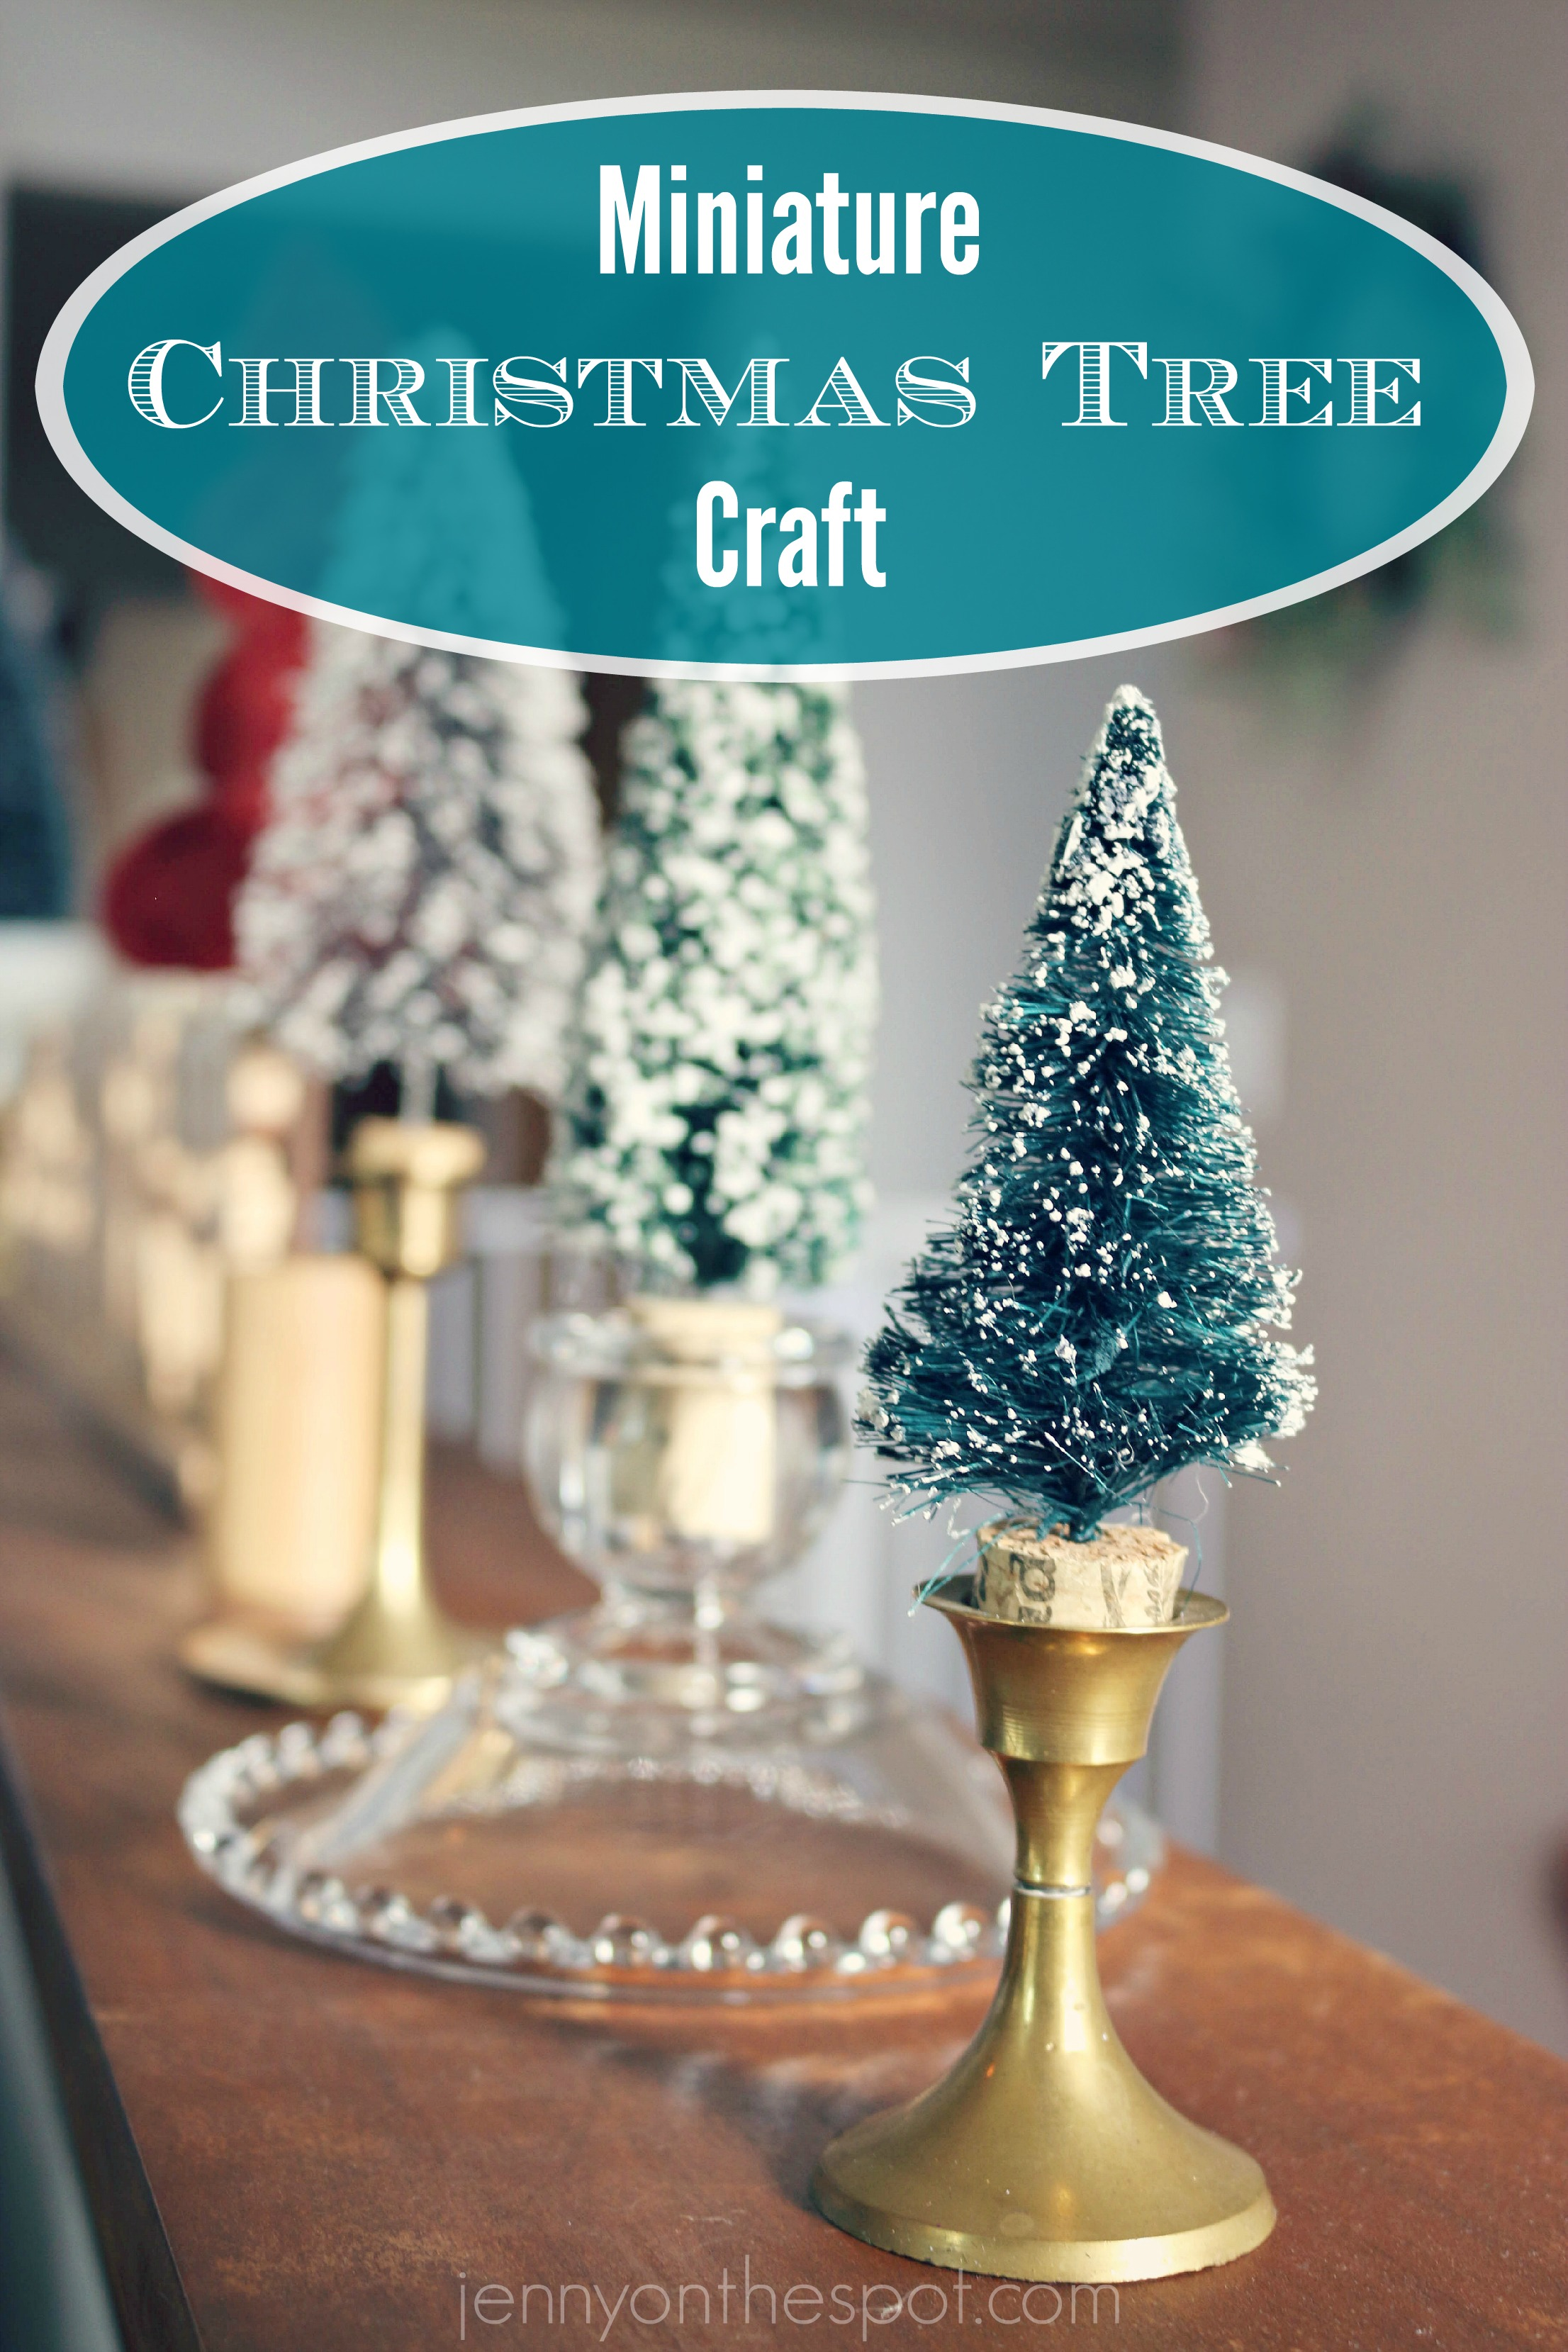 Captivating Miniature Christmas Tree Craft Via @jennyonthespot